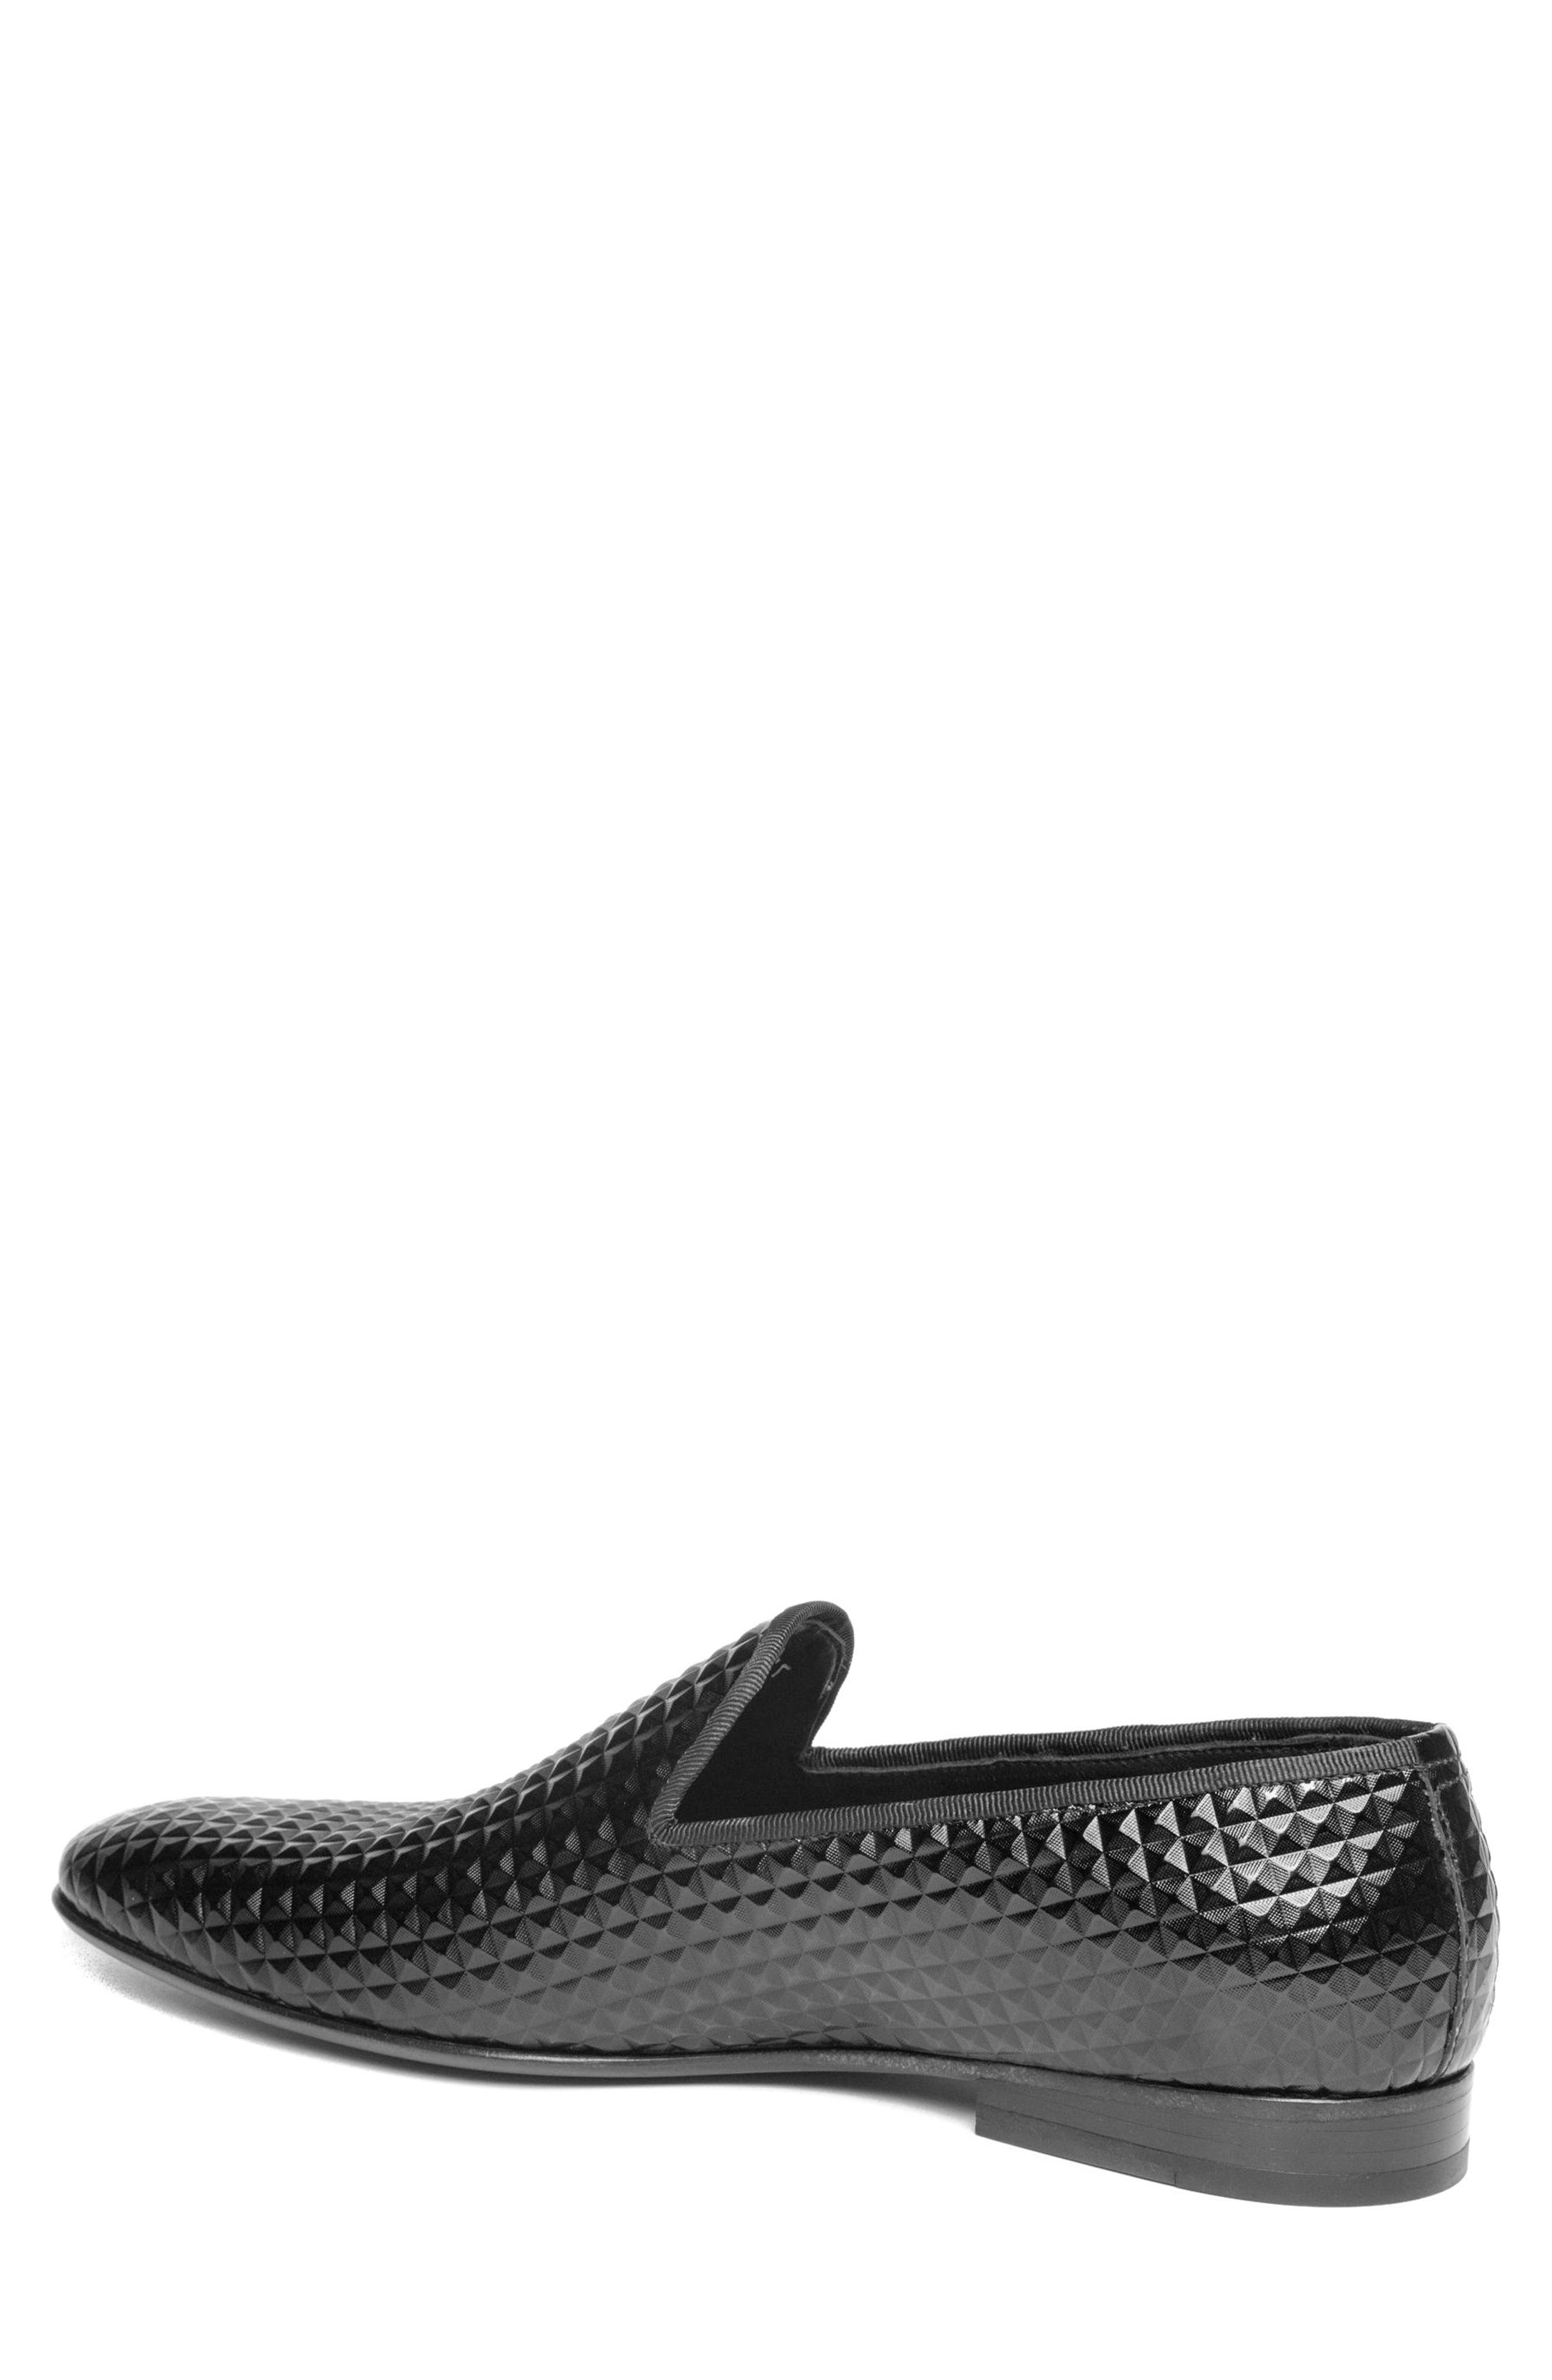 Hugh Pyramid Embossed Venetian Loafer,                             Alternate thumbnail 2, color,                             001